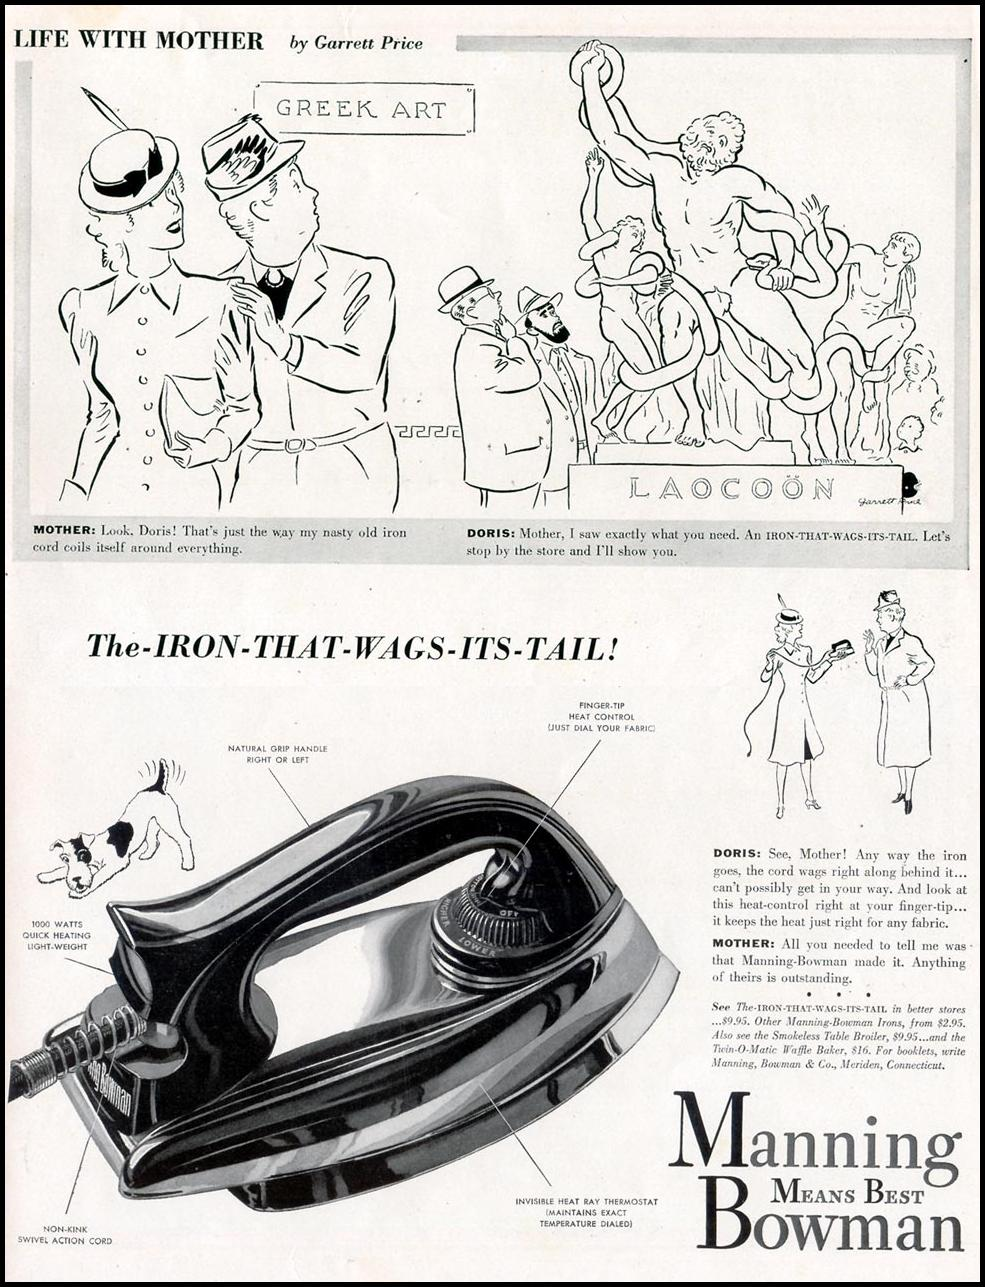 MANNING BOWMAN IRONS